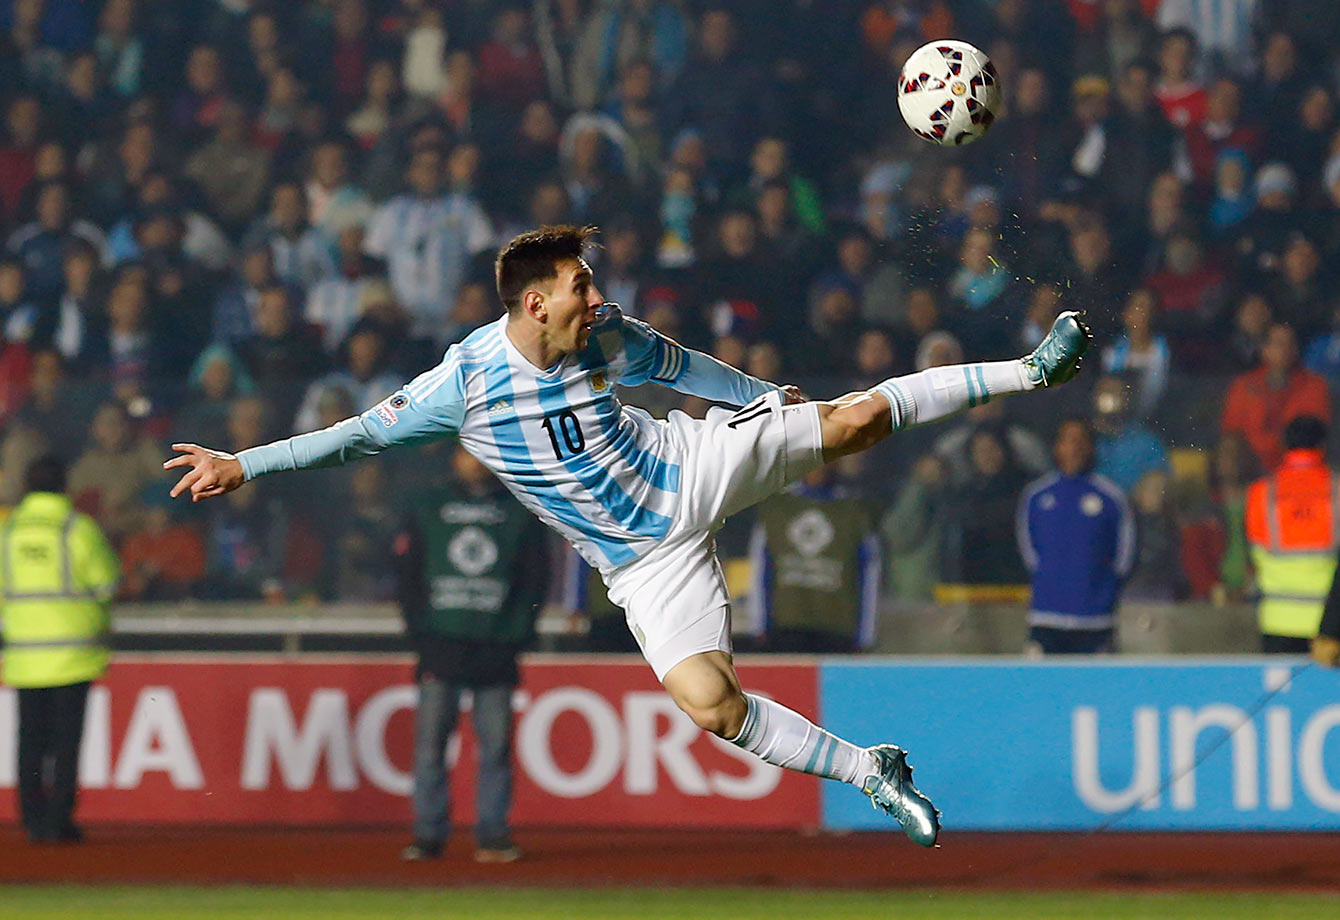 Argentina's Lionel Messi kicks the ball during their Copa America semifinal match against Paraguay on June 30, 2015 at the Estadio Municipal de Concepcion in Chile.